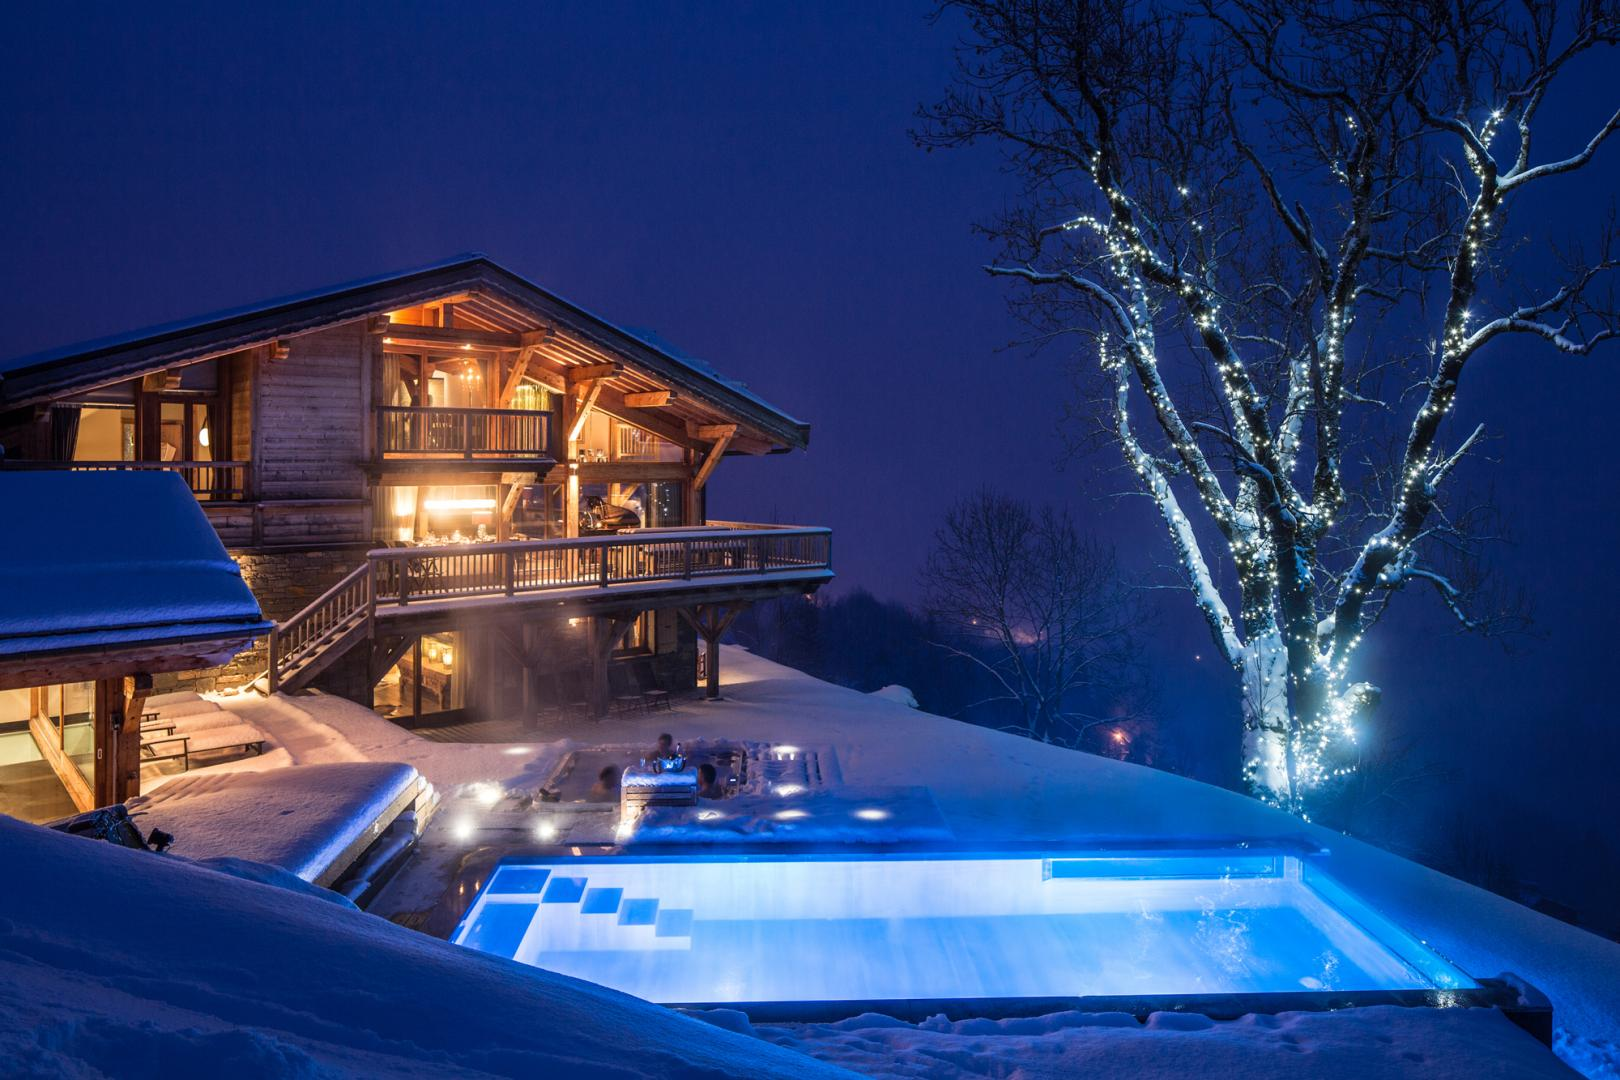 Chalet Grande Corniche outdoor are showing swimming pool and hot tub lit up at night.